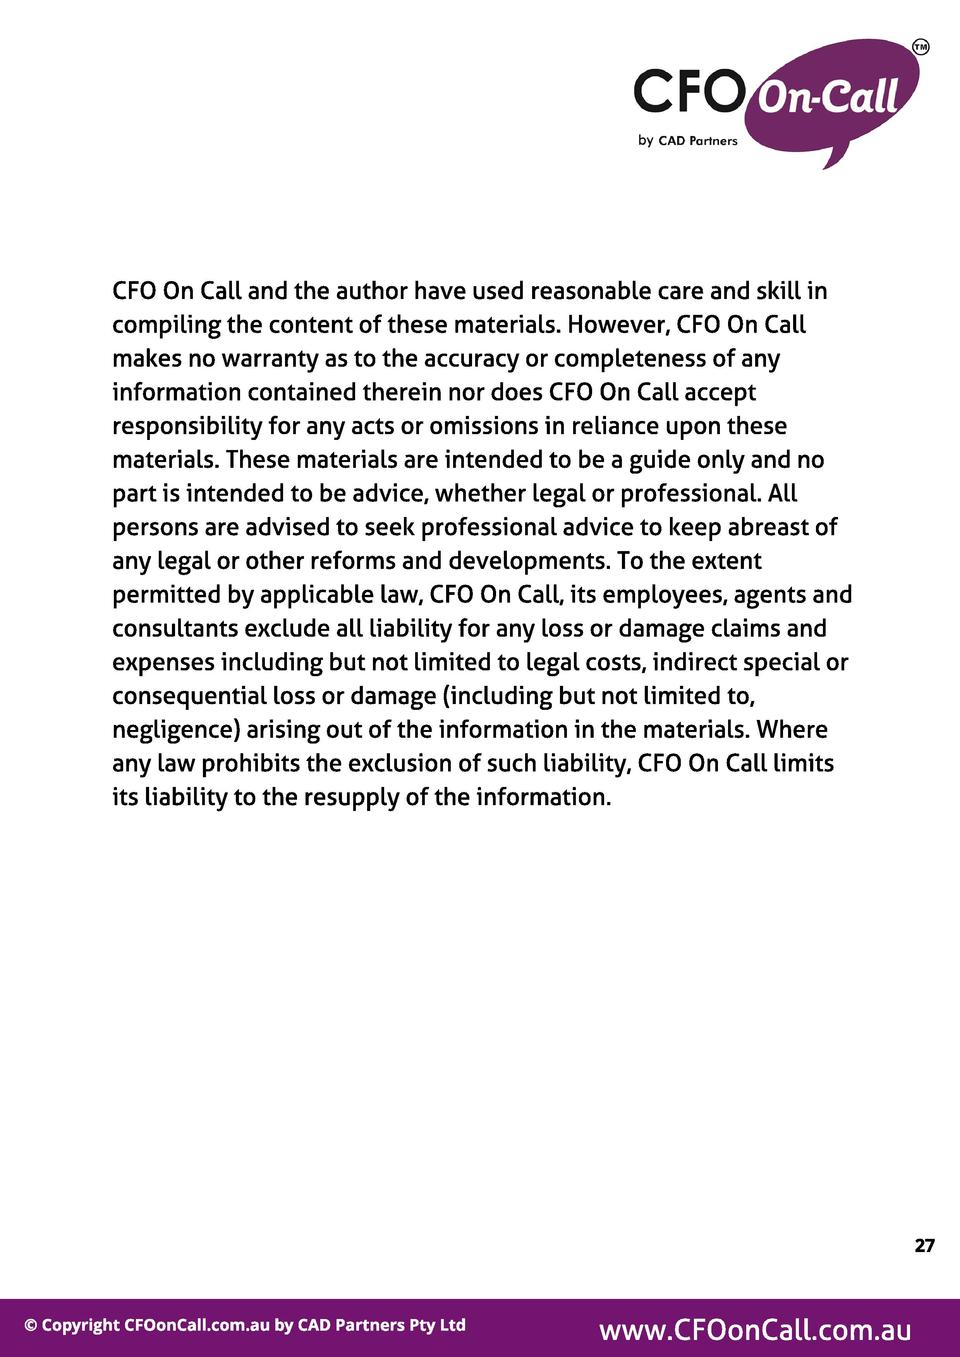 CFO On Call and the author have used reasonable care and skill in compiling the content of these materials. However, CFO O...